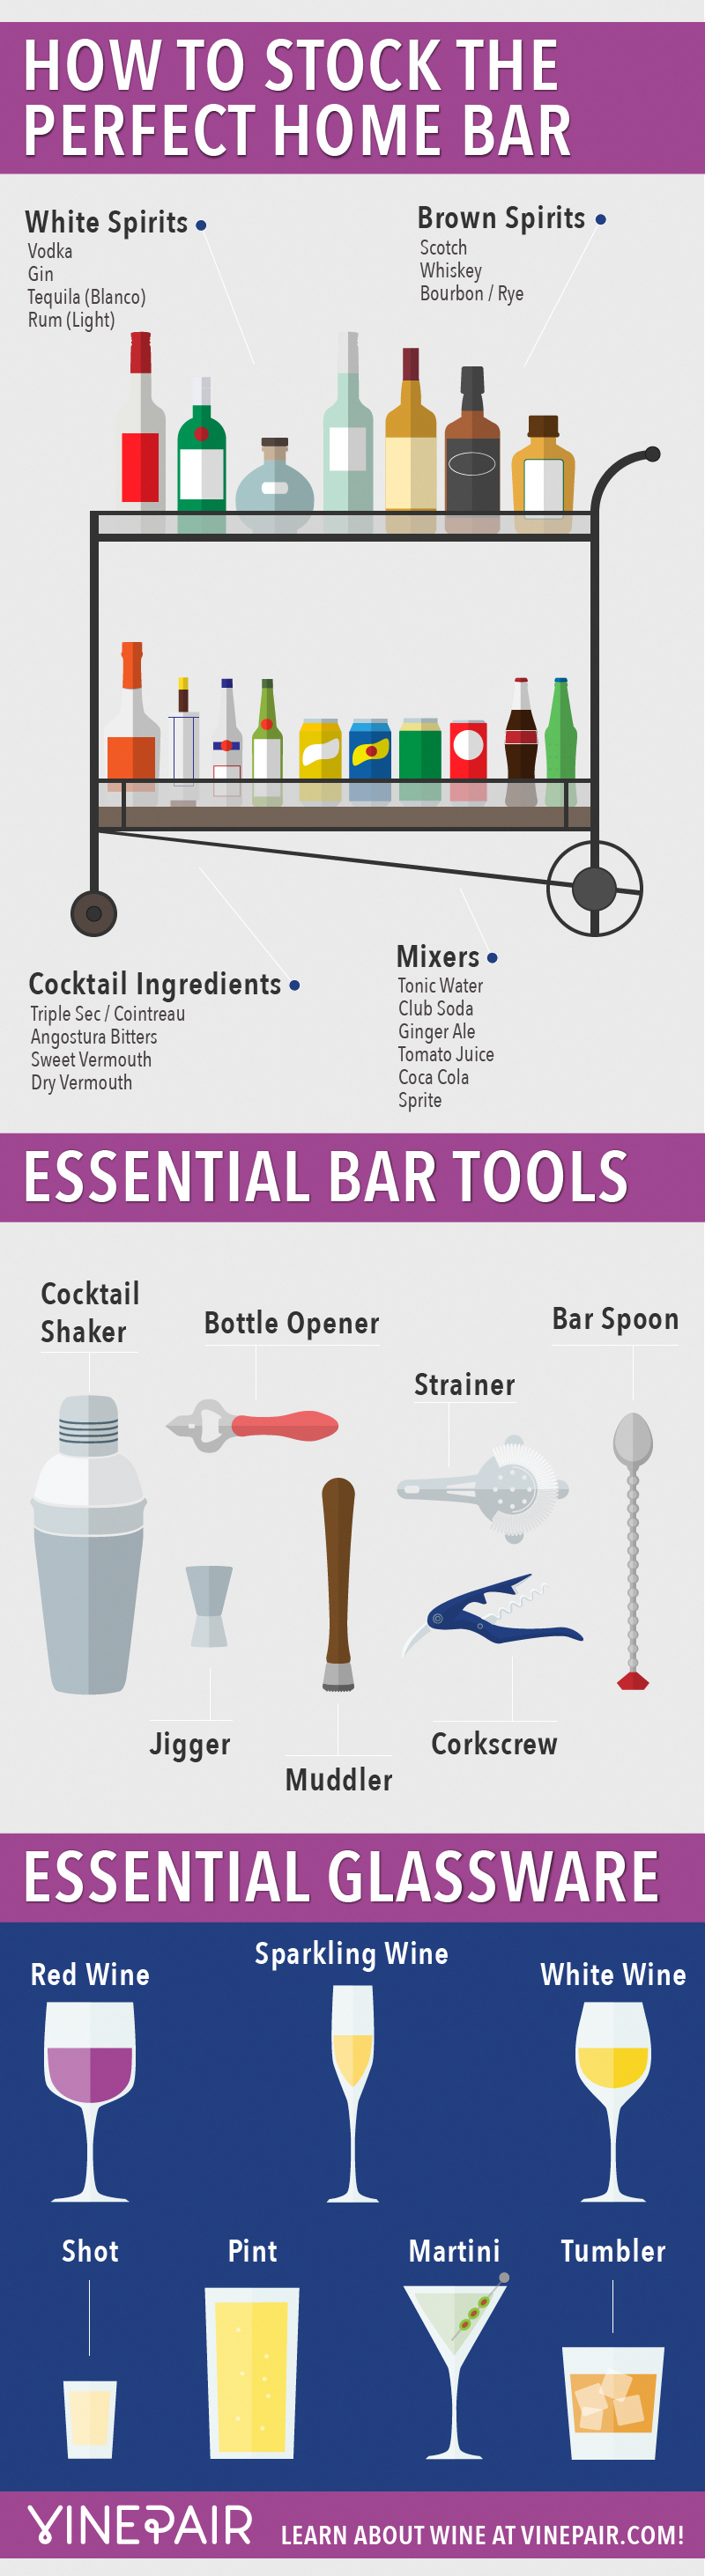 How To Stock The Perfect Home Bar